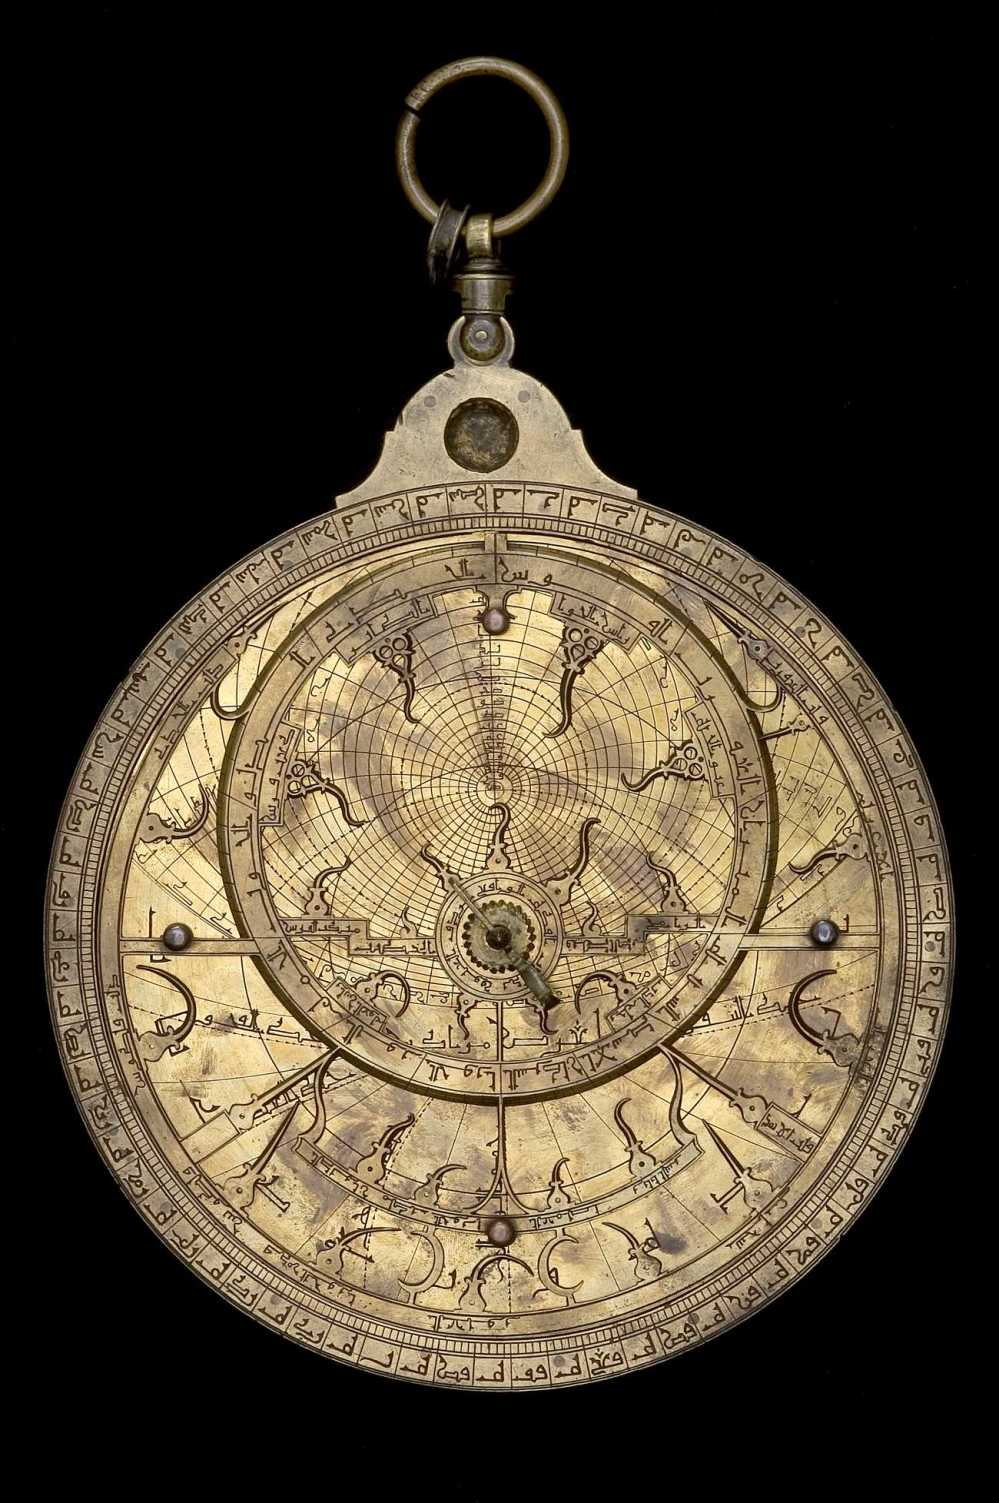 preview image for Astrolabe, North African, Late 16th or Early 17th Century